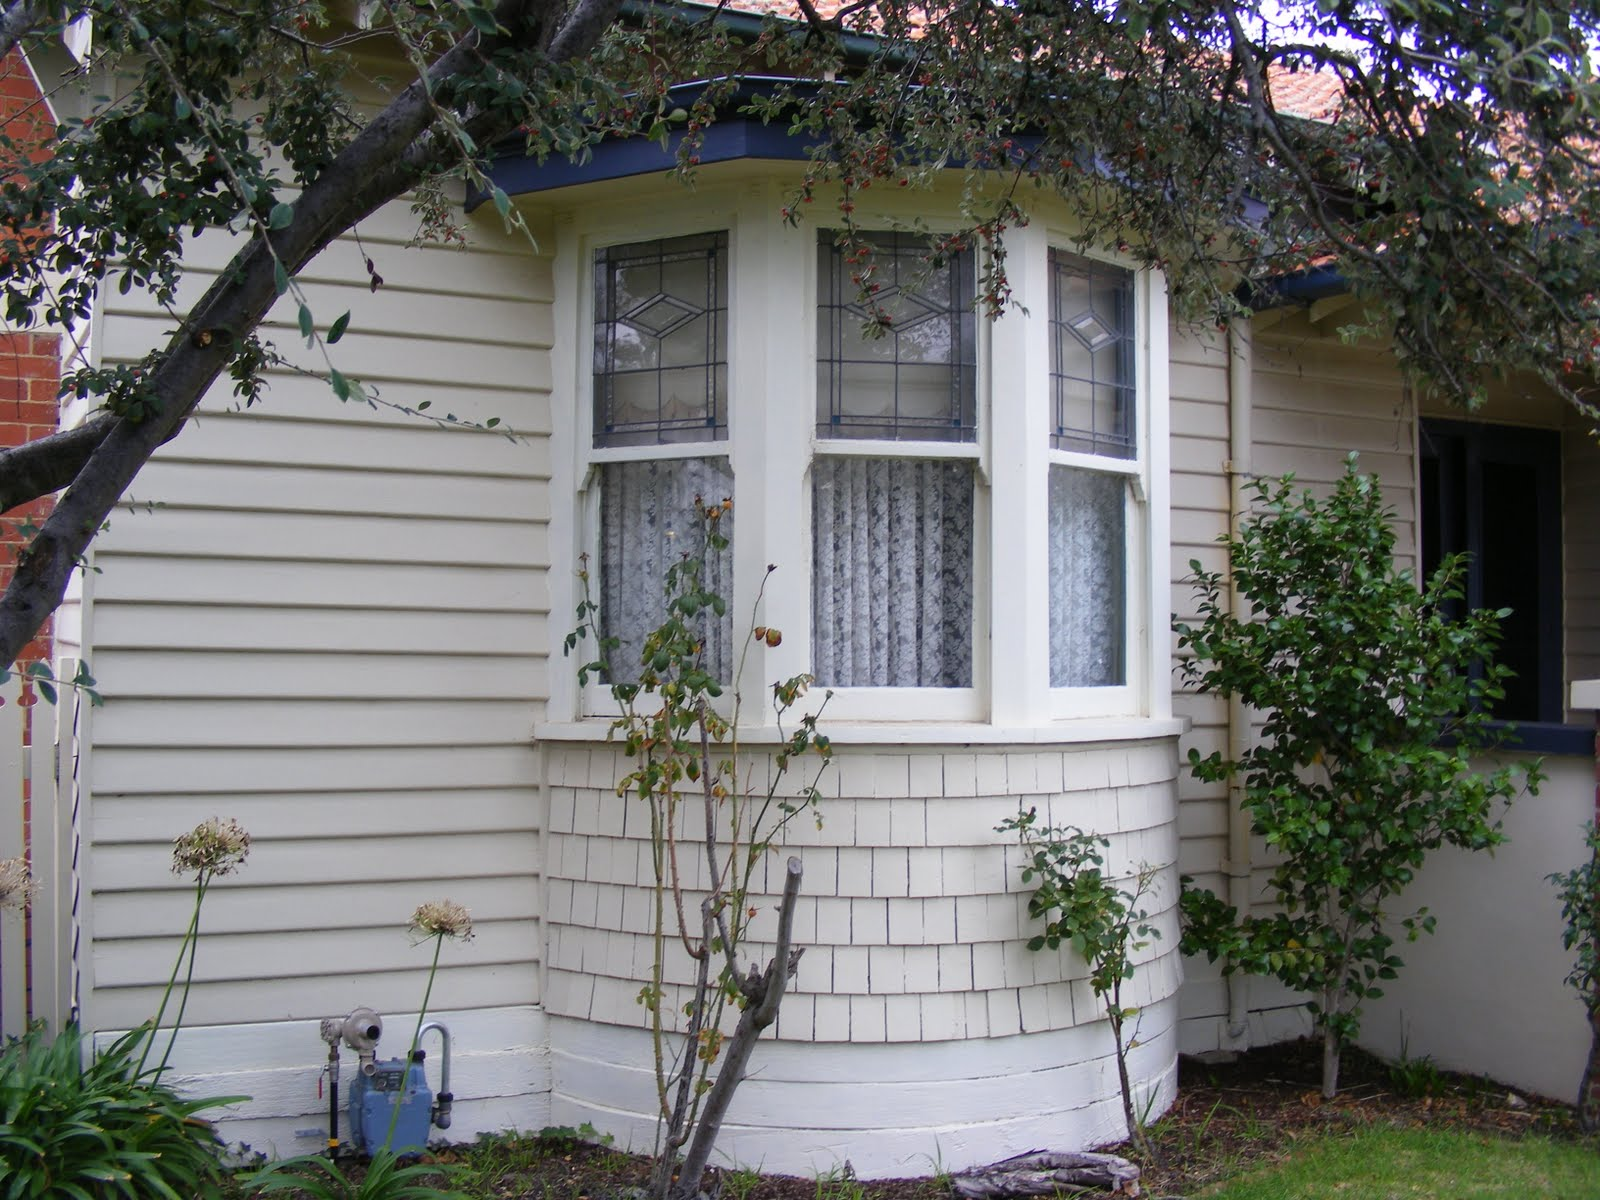 TRENTHAM TALES The State Bank Californian Bungalow and Mrs